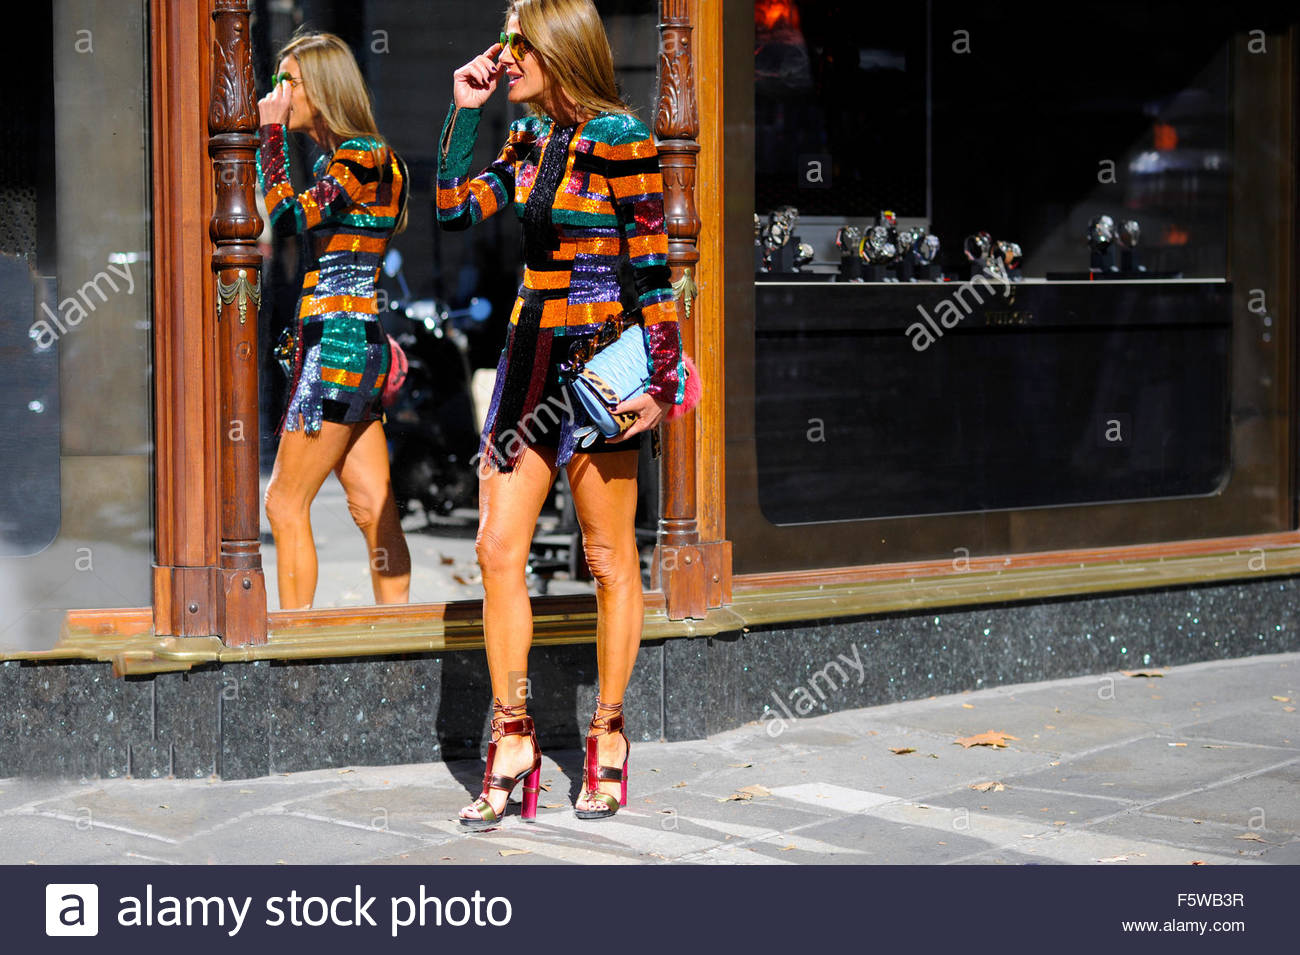 Anna Dello Russo  arrival for Balmain ready to wear SS16 FW15, on rue Scribe, Paris Fashion Week 2015. - Stock Image